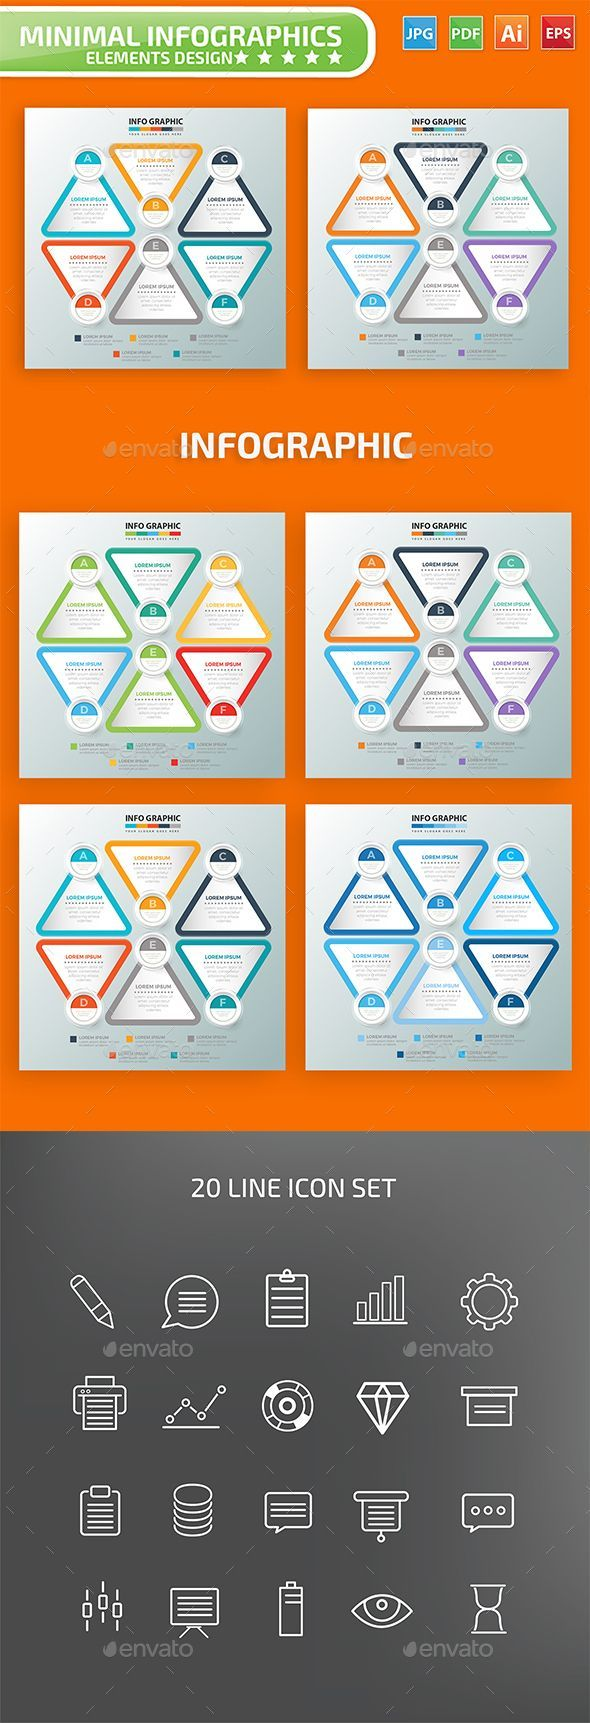 Infographic Design Professional infographic template